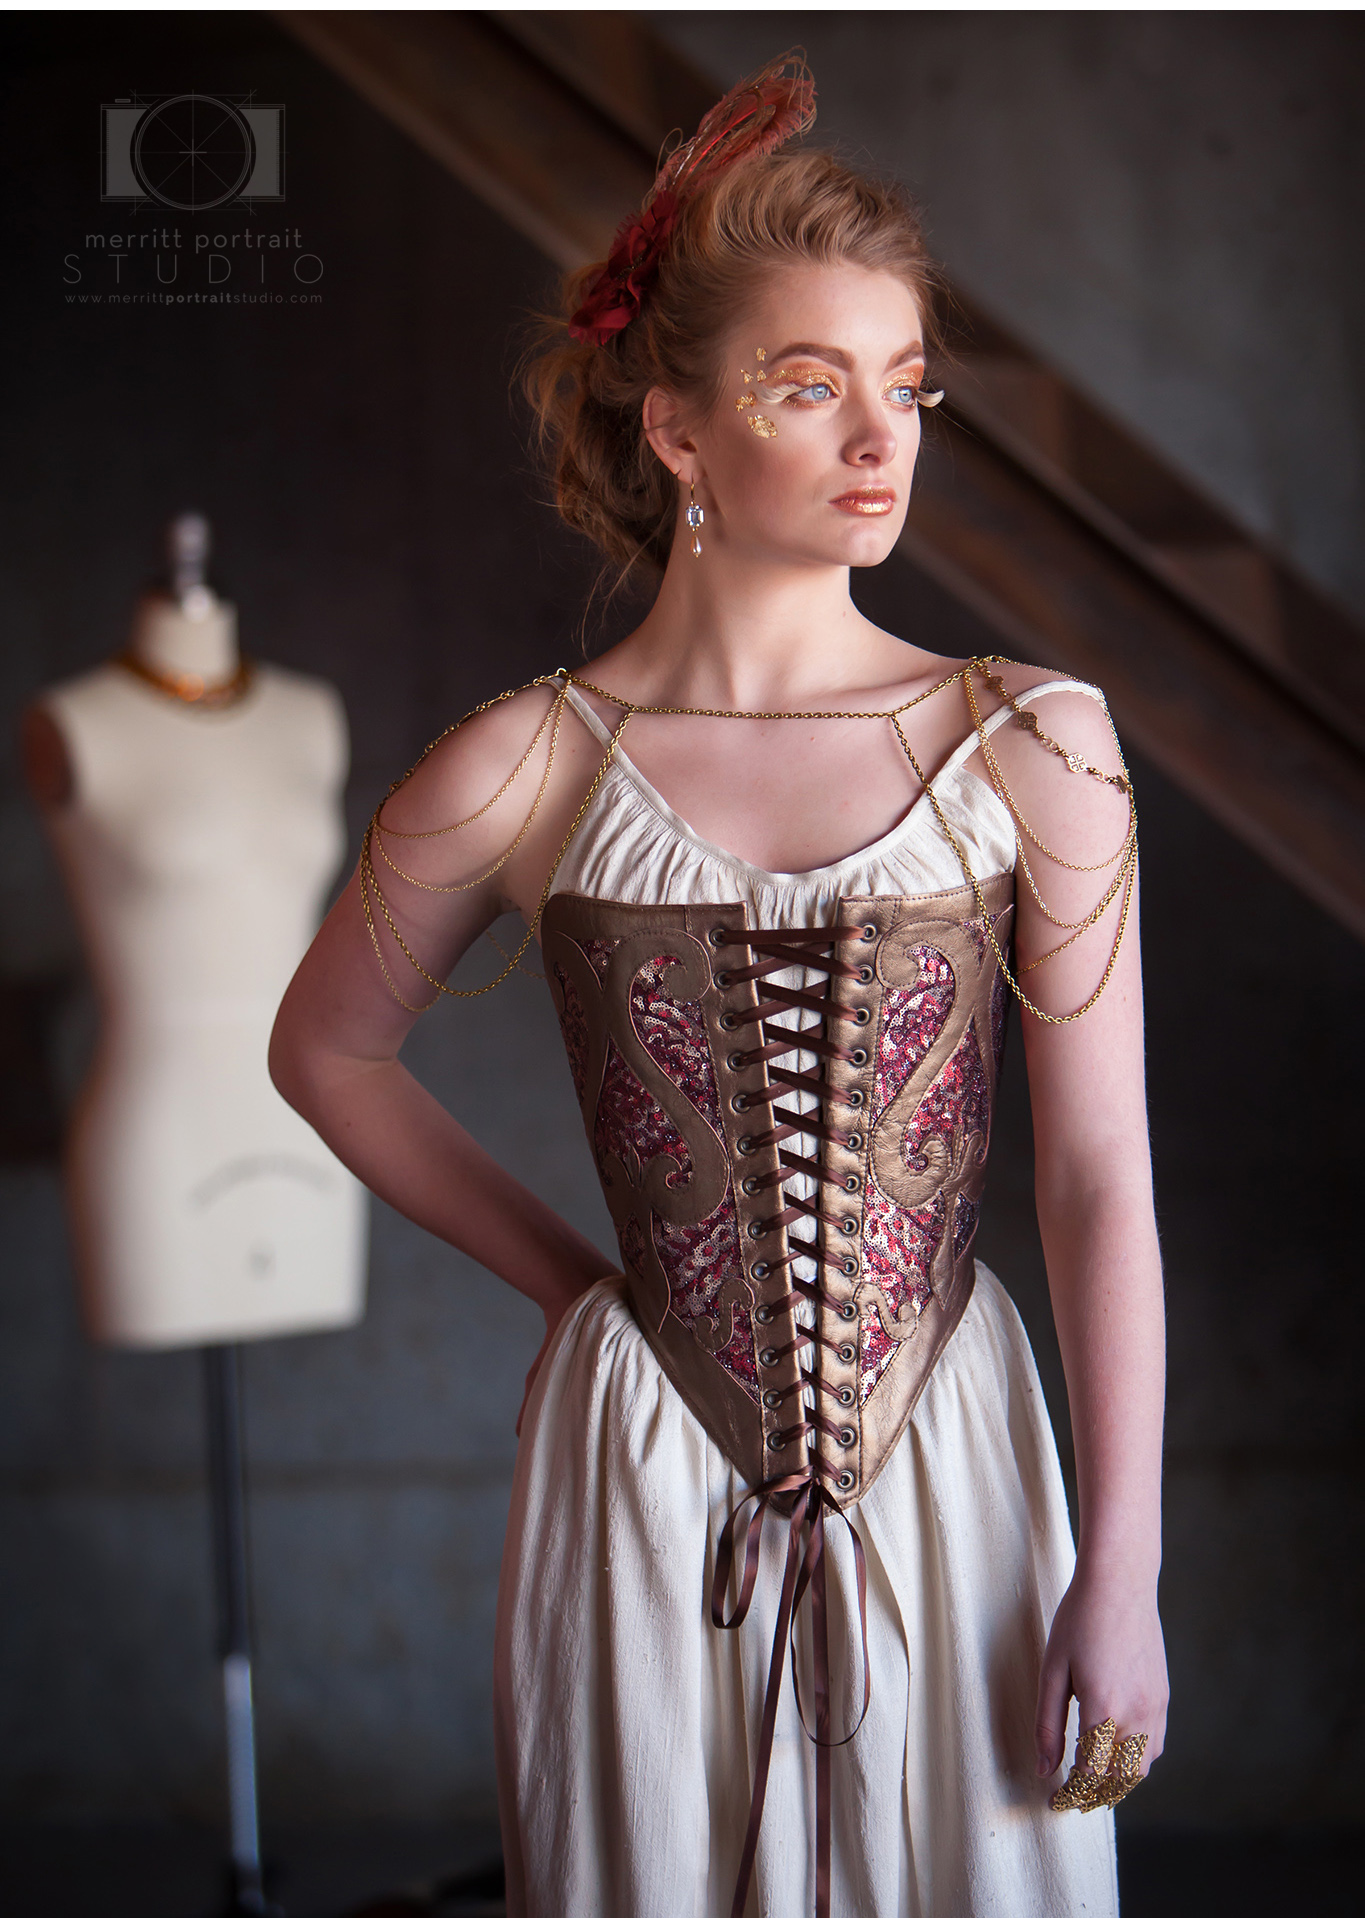 High Fashion Styled Corset Photo Session in Denver. Costume designer Cynthia Settje of Redthreaded. Photographer Jennifer Koskinen | Merritt Portrait Studio